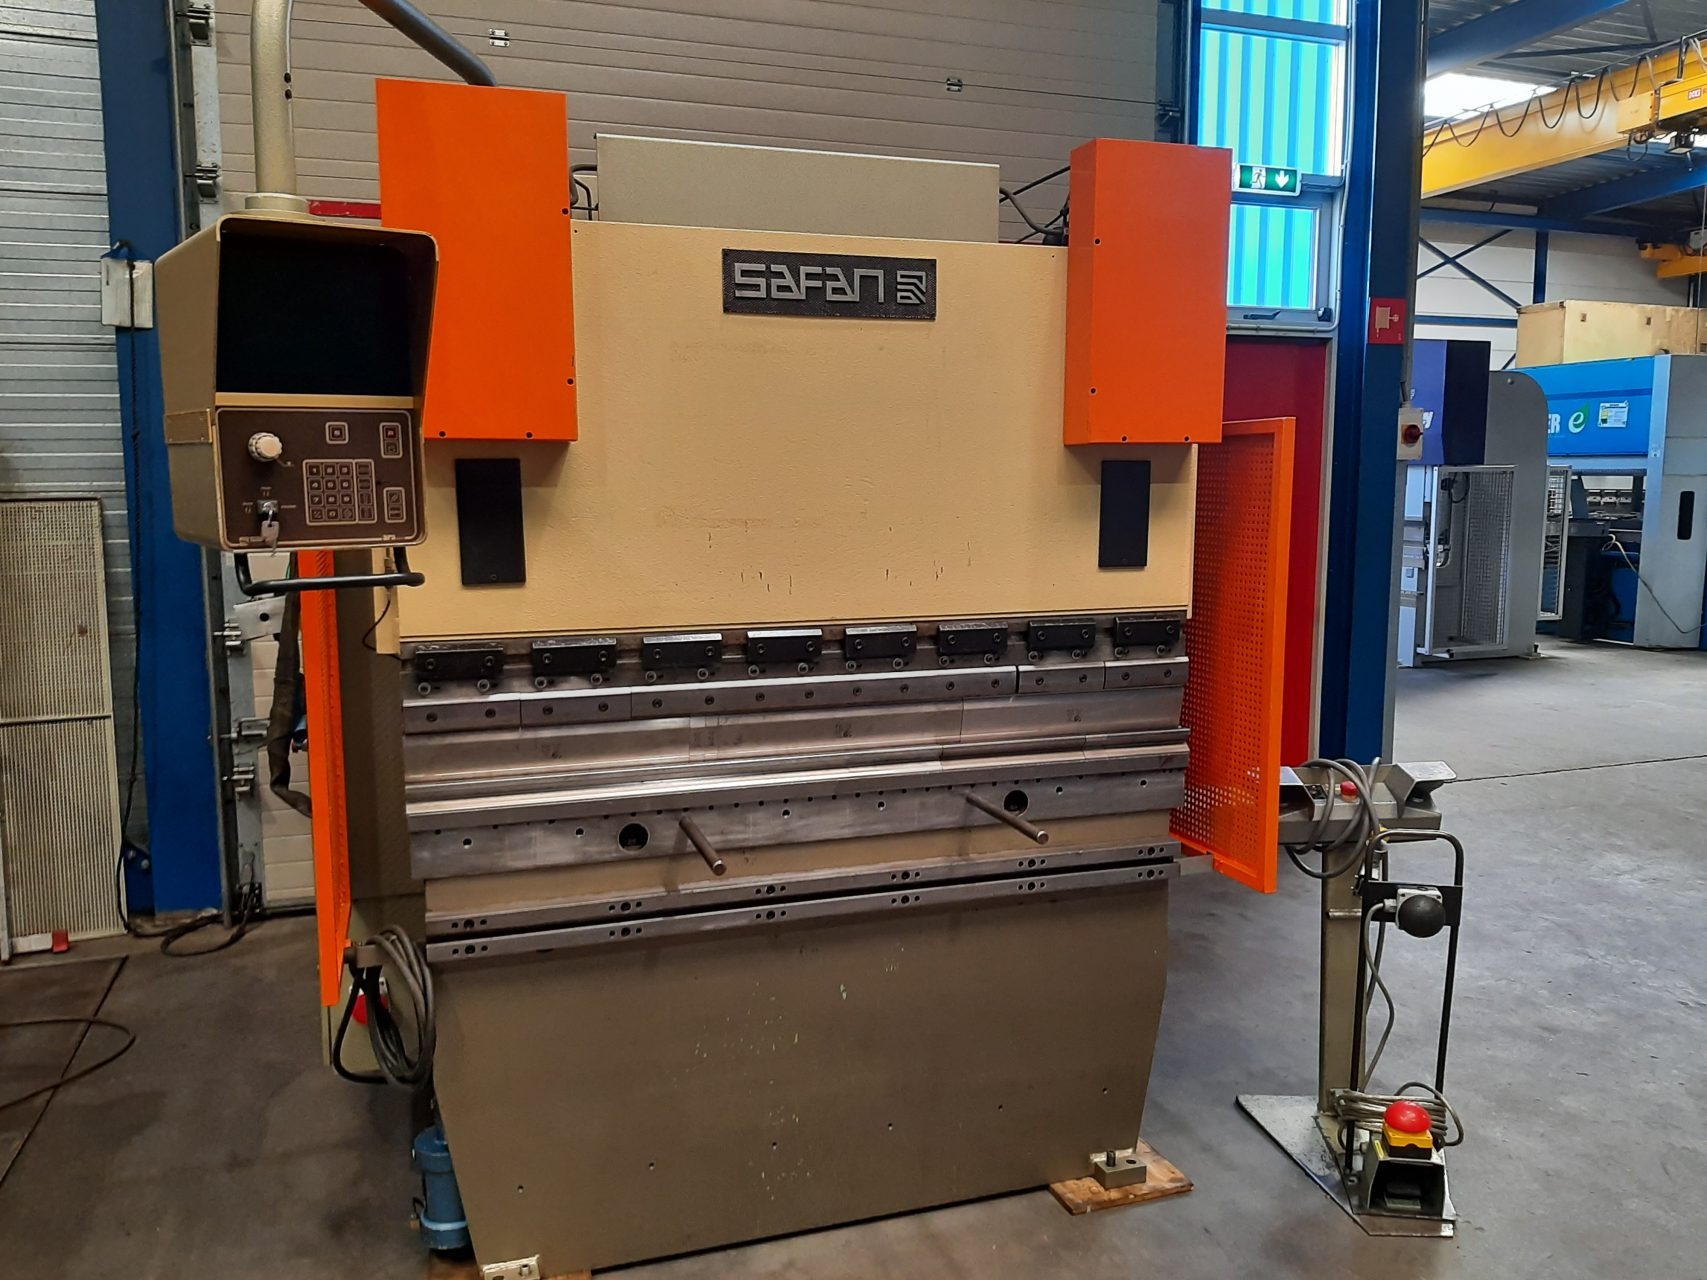 Safan press brake